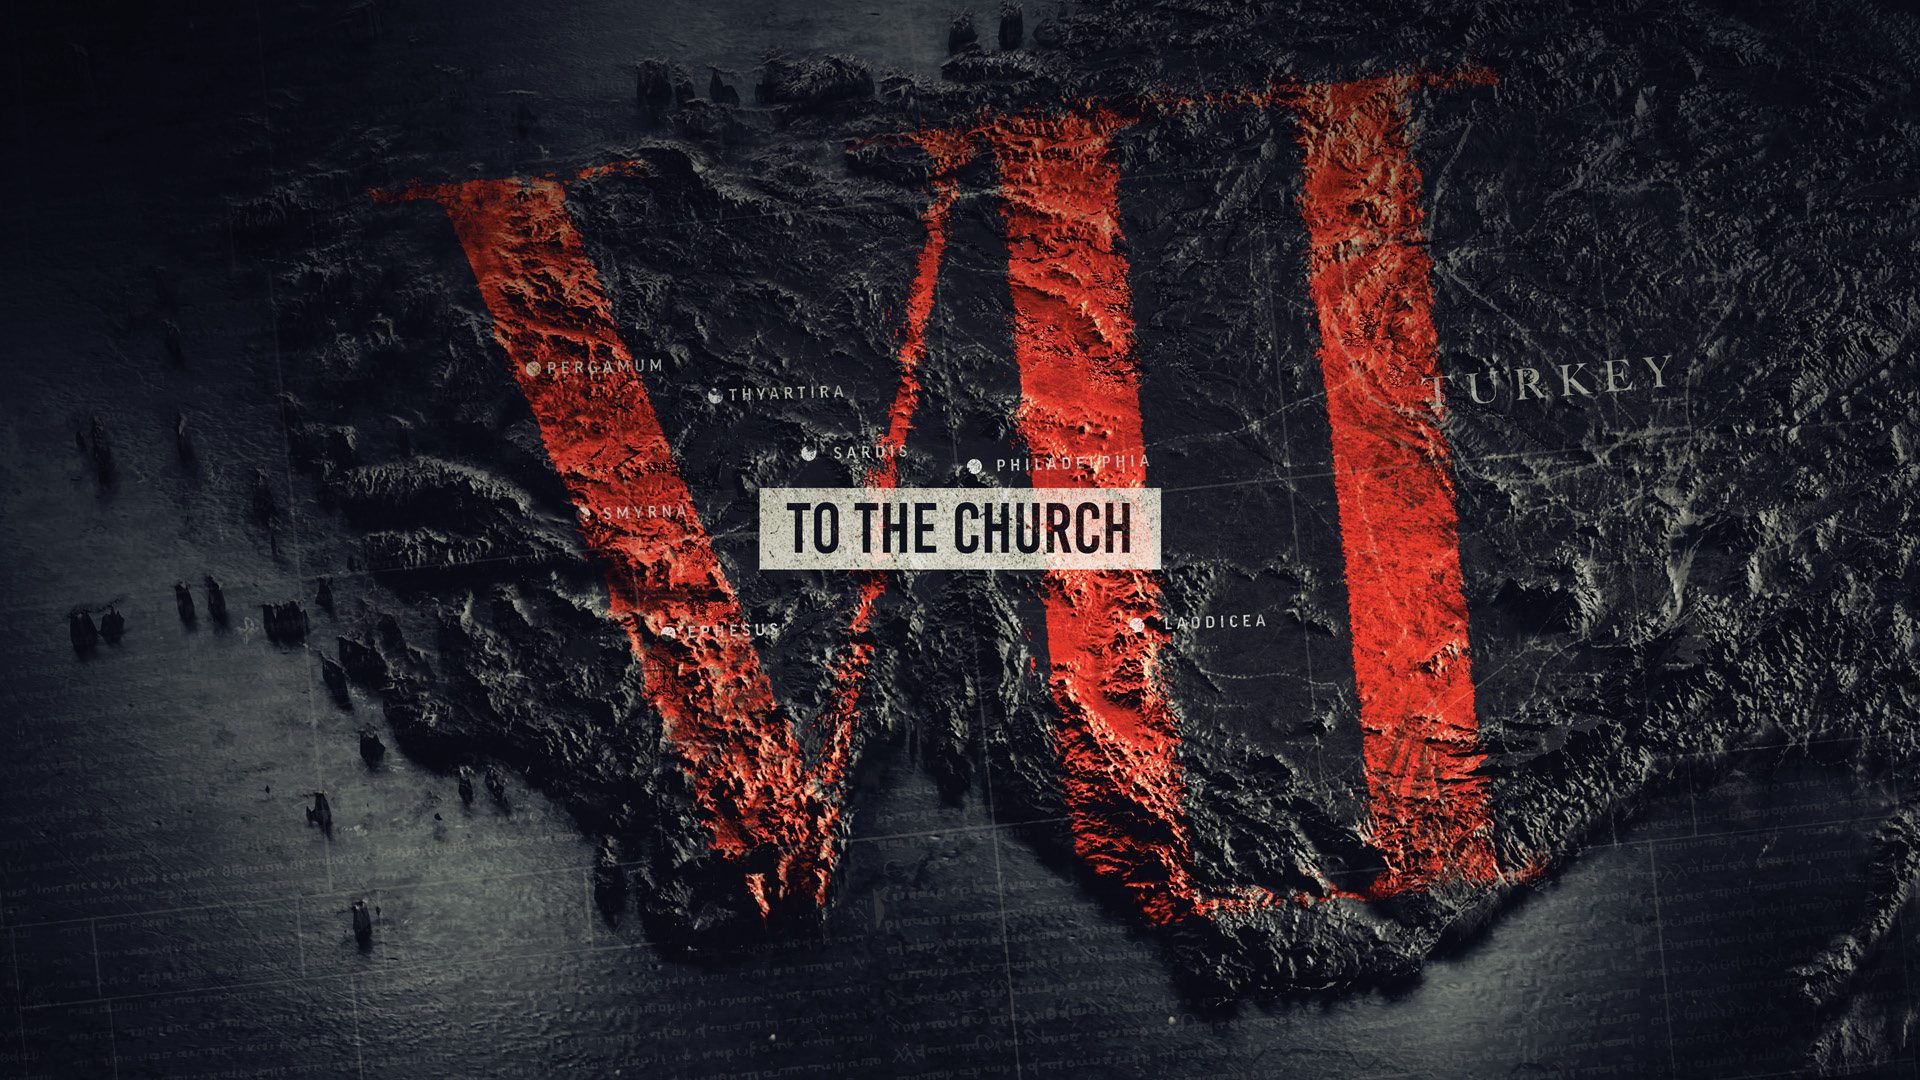 To The Church - Week 2: Smyrna - Suffer Well